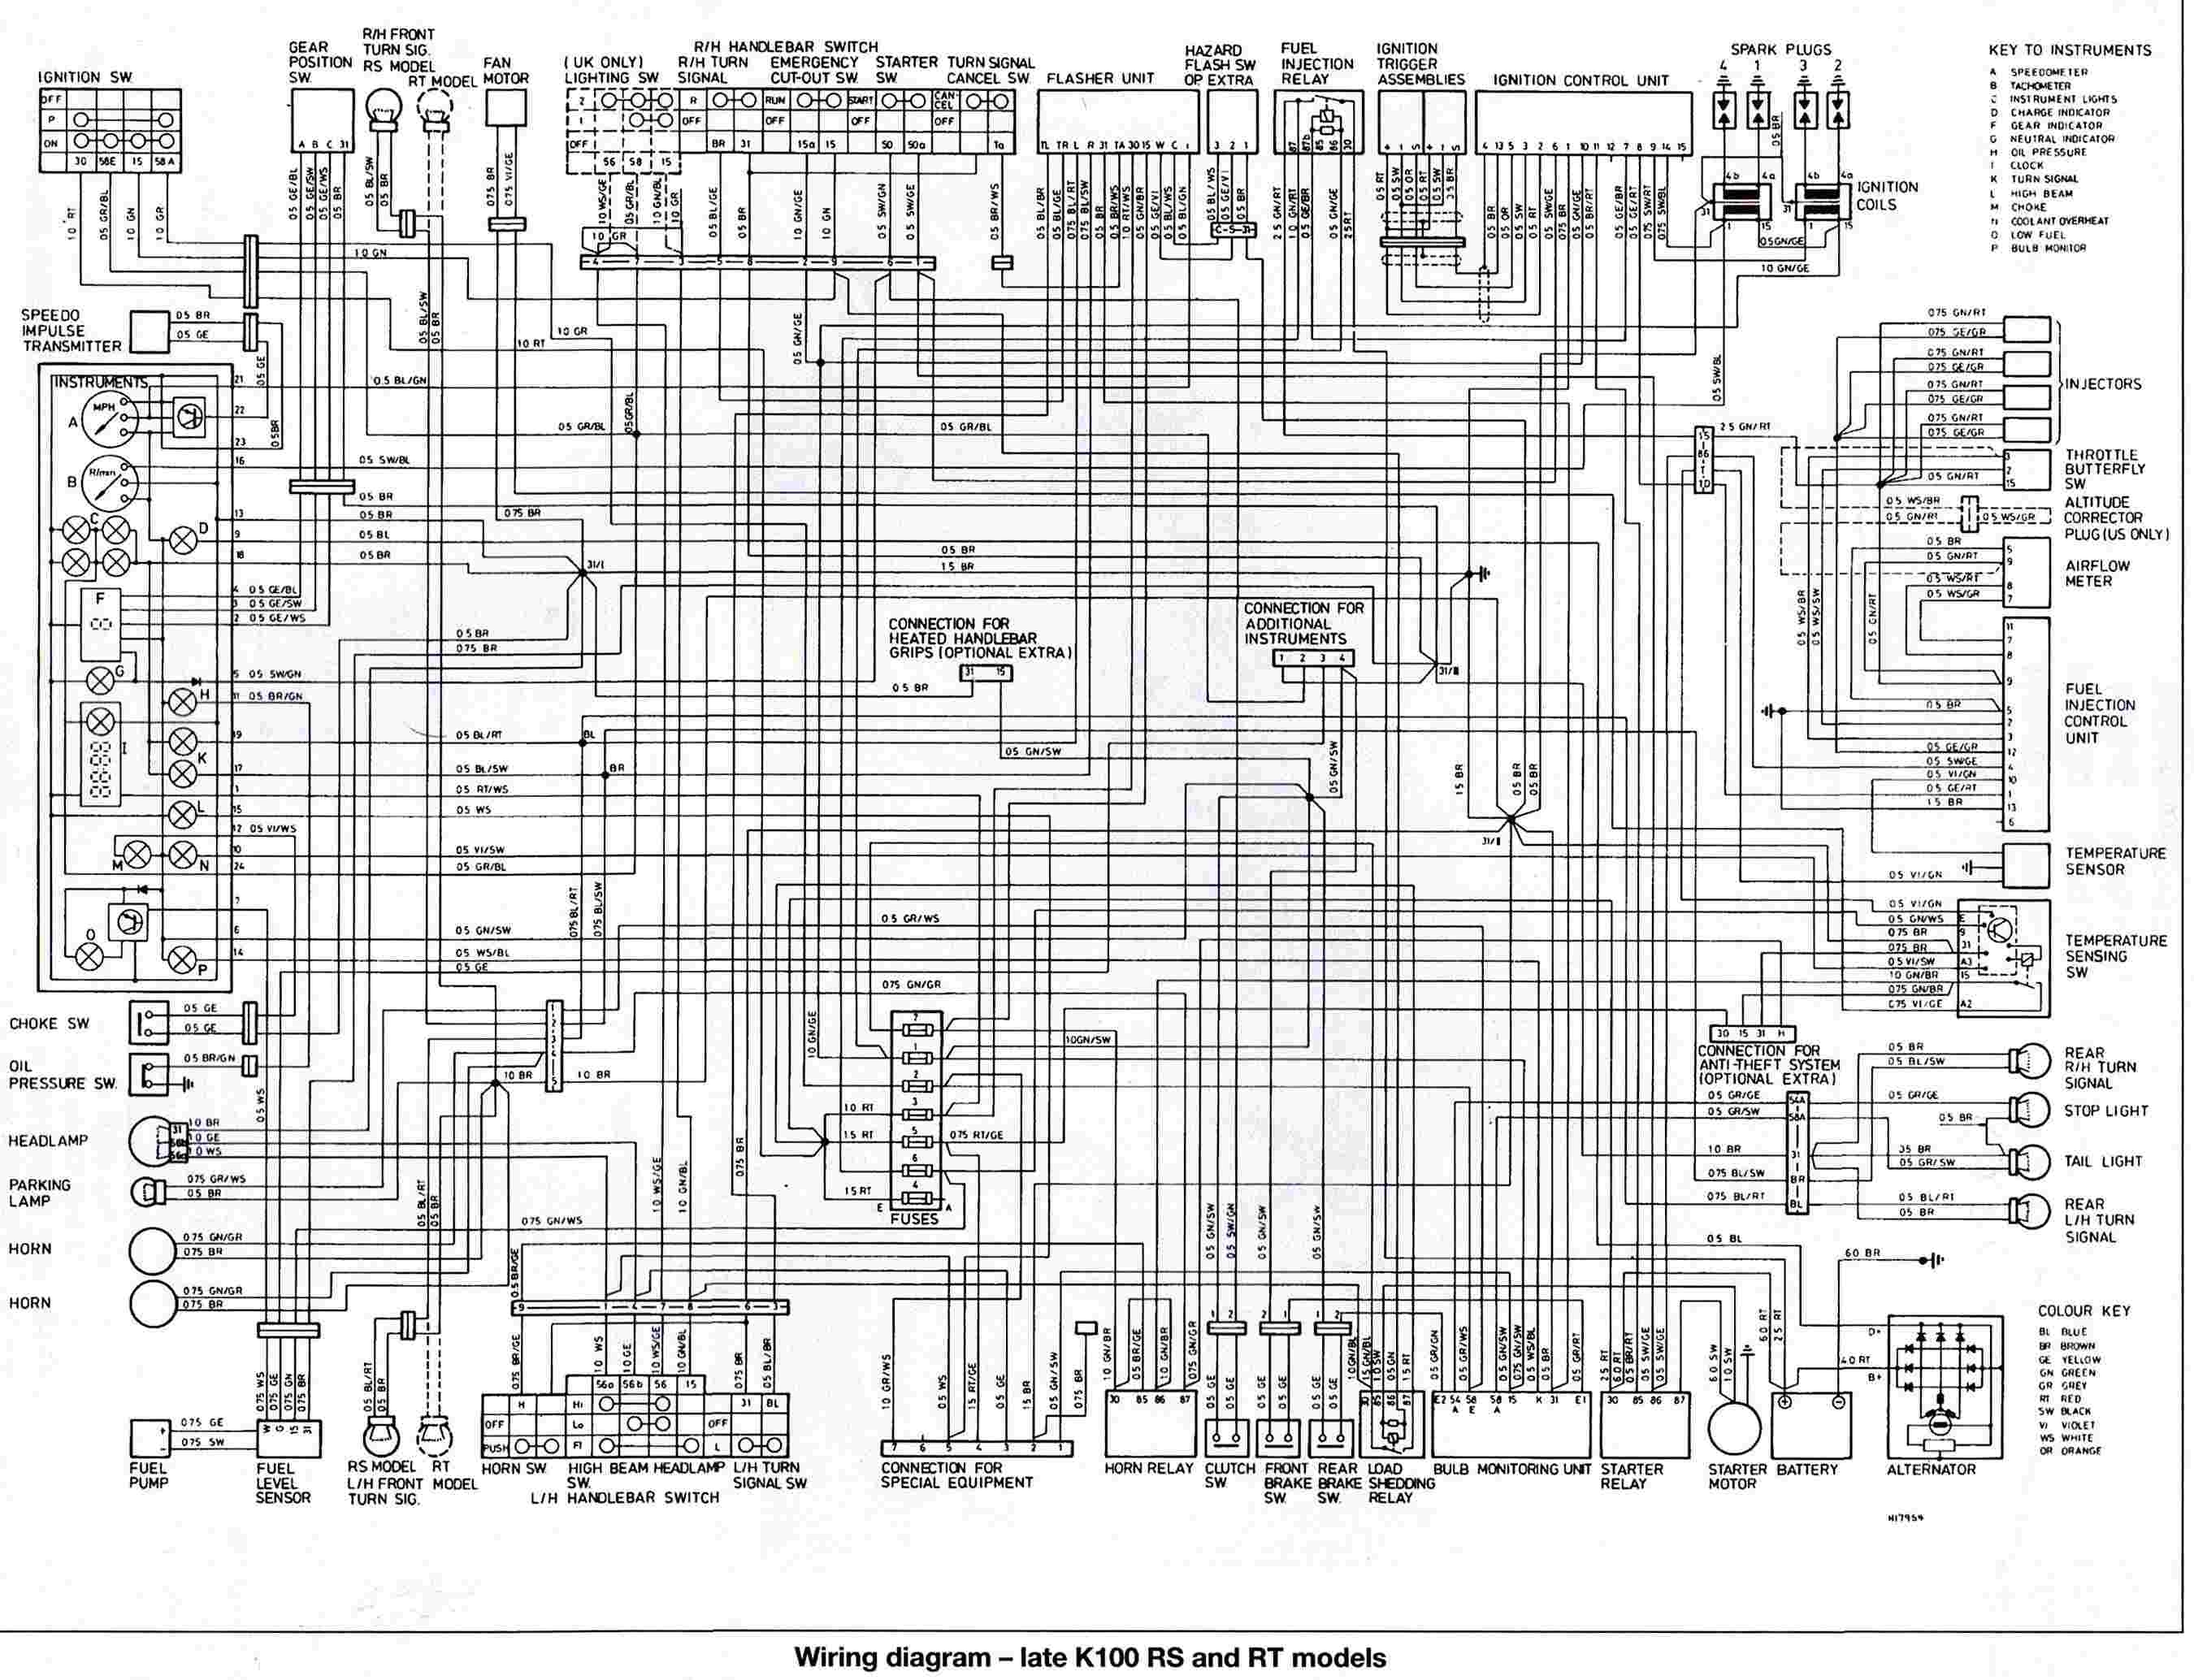 Bmw E39 Wiring Diagram - Wiring Diagram 500 Bmw Wiring Diagram Wds on ford fuel system diagrams, golf cart diagrams, ford transmission diagrams, comet clutch diagrams, time warner cable connection diagrams, ford 5.4 vacuum line diagrams, bmw cooling system, snap-on parts diagrams, bmw e46 wiring harness, pinout diagrams, bmw 328i radiator diagram, bmw planet diagrams, bmw suspension diagrams, 1998 bmw 528i parts diagrams, bmw schematic diagram, bmw stereo wiring harness, bmw wiring harness connectors male, directv swim diagrams, bmw fuses,